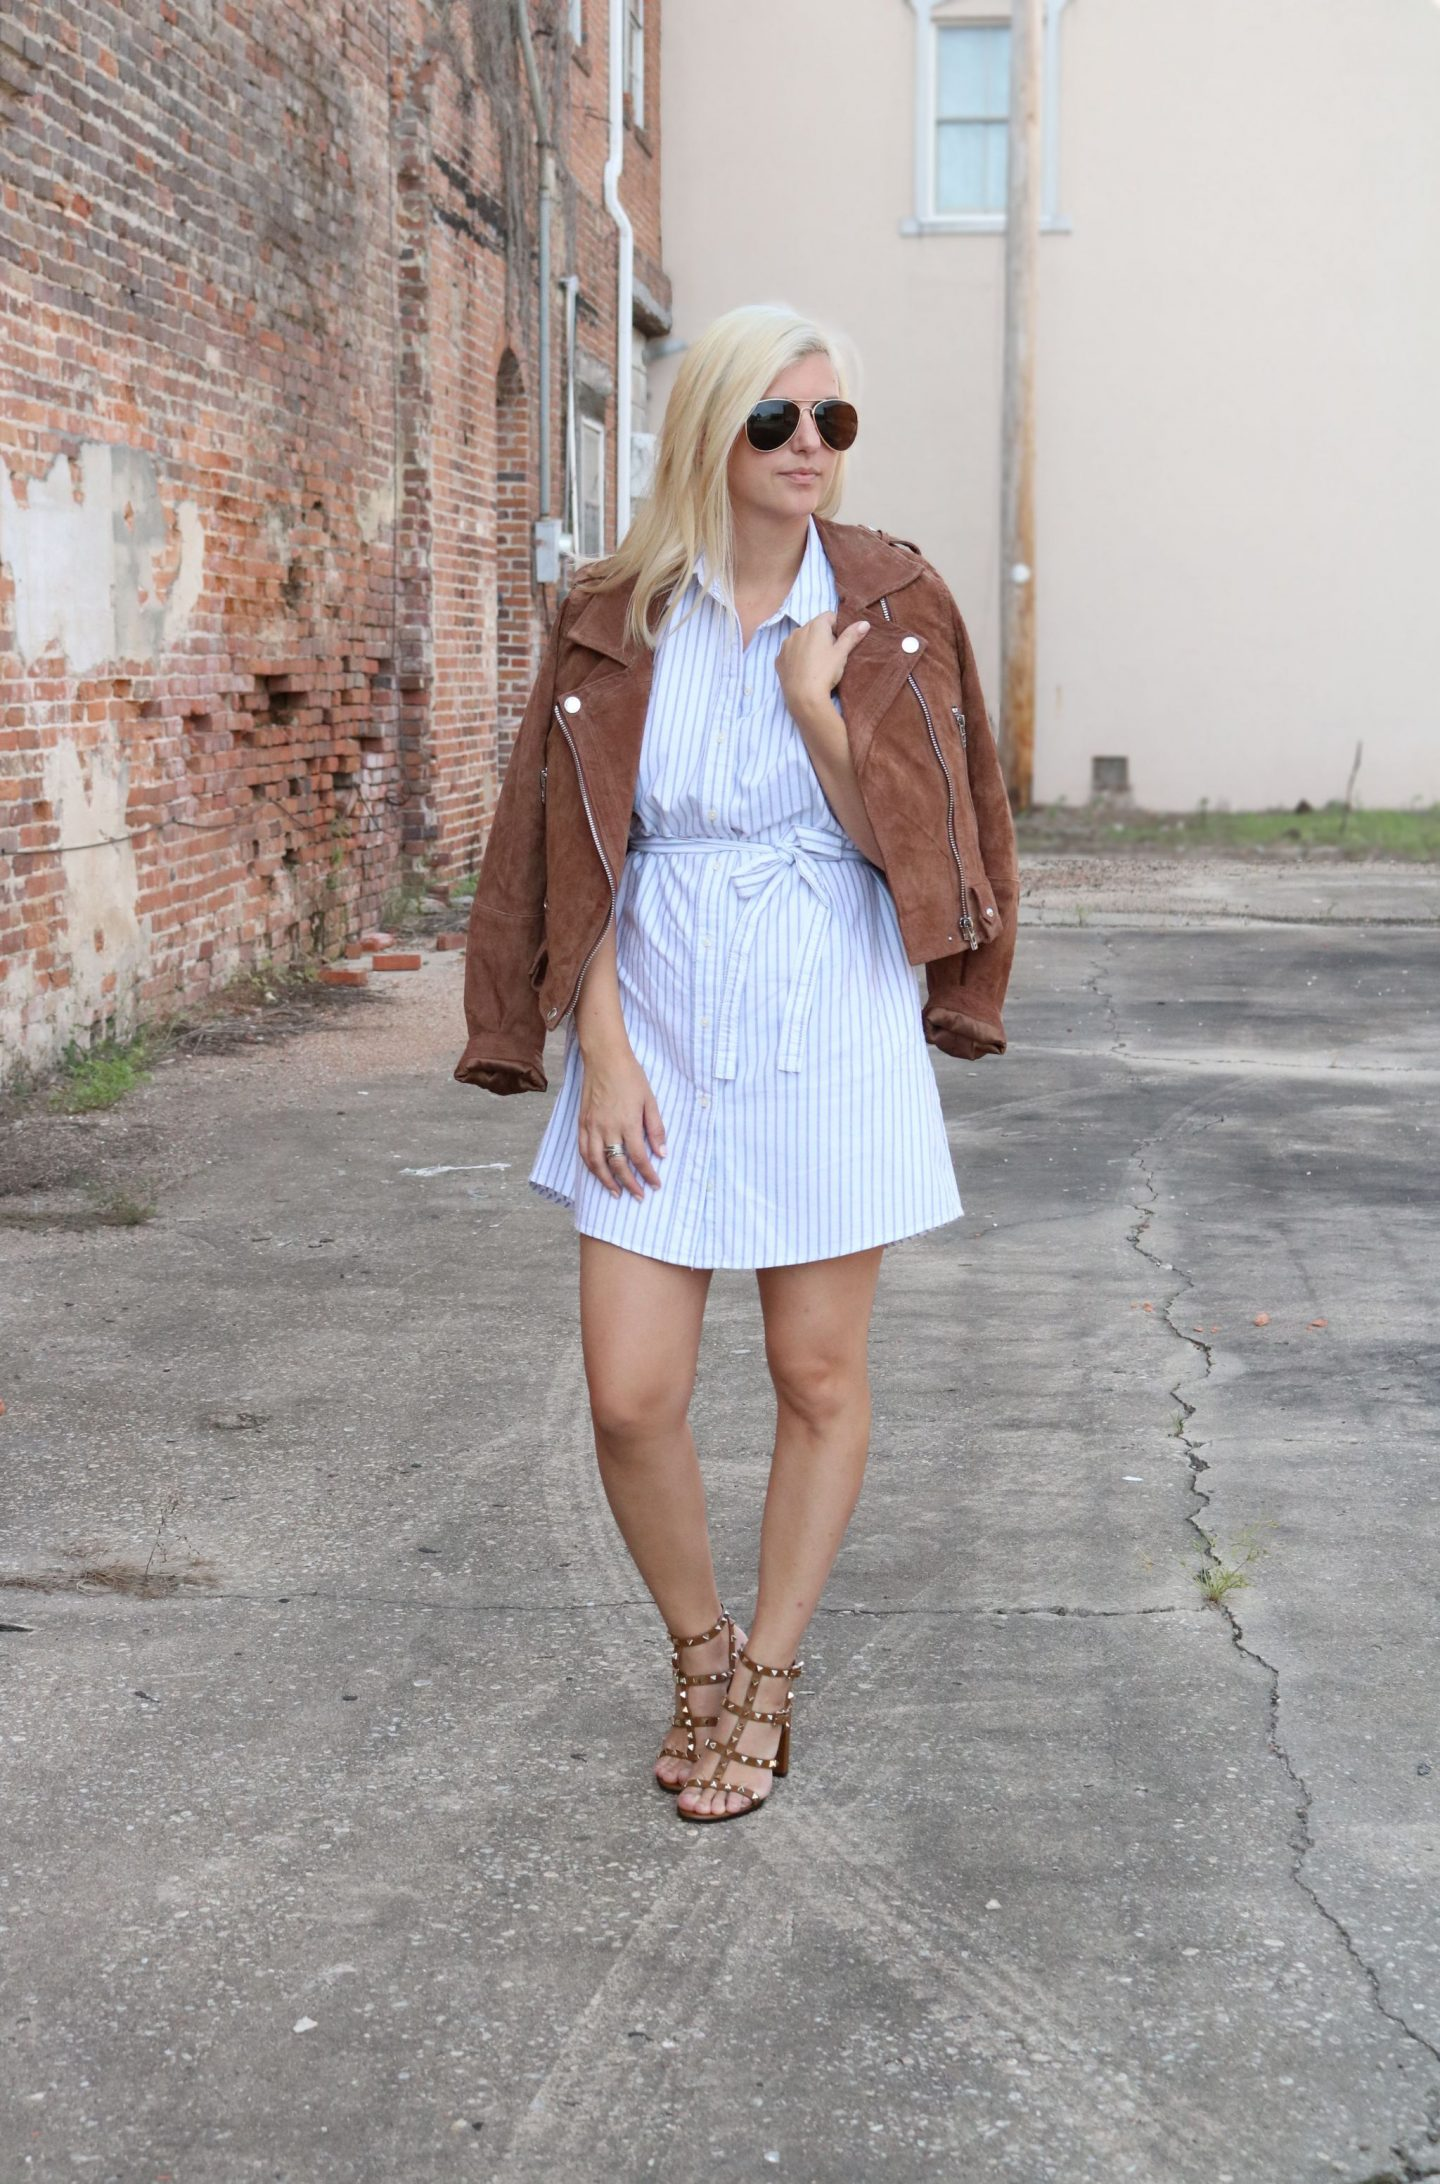 shirt dress with leather jacket, settling southern